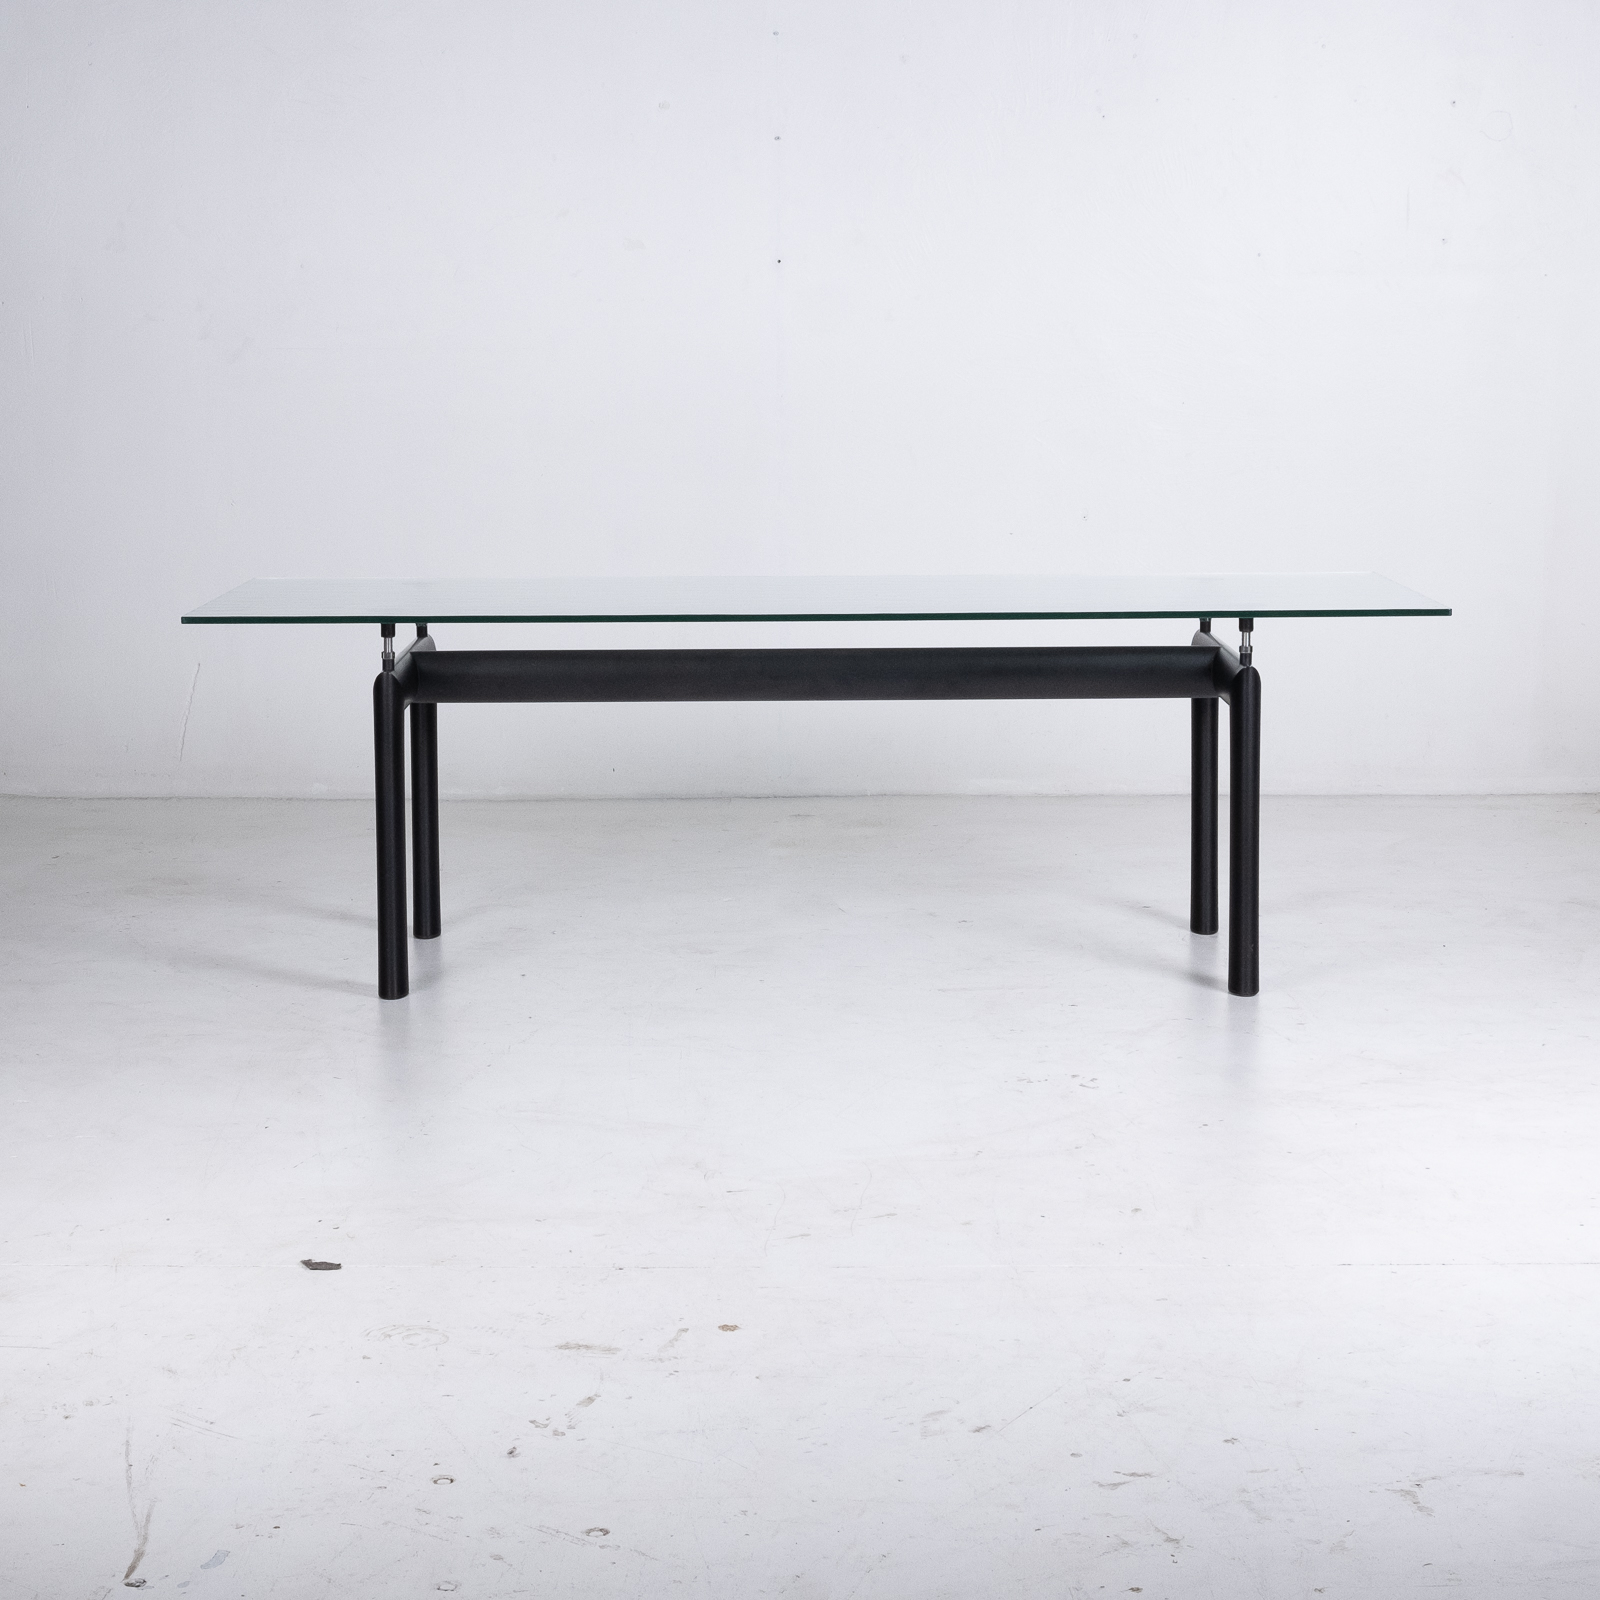 Model Lc6 Glass Table By Le Corbusier For Cassina, 1990s, Italy1